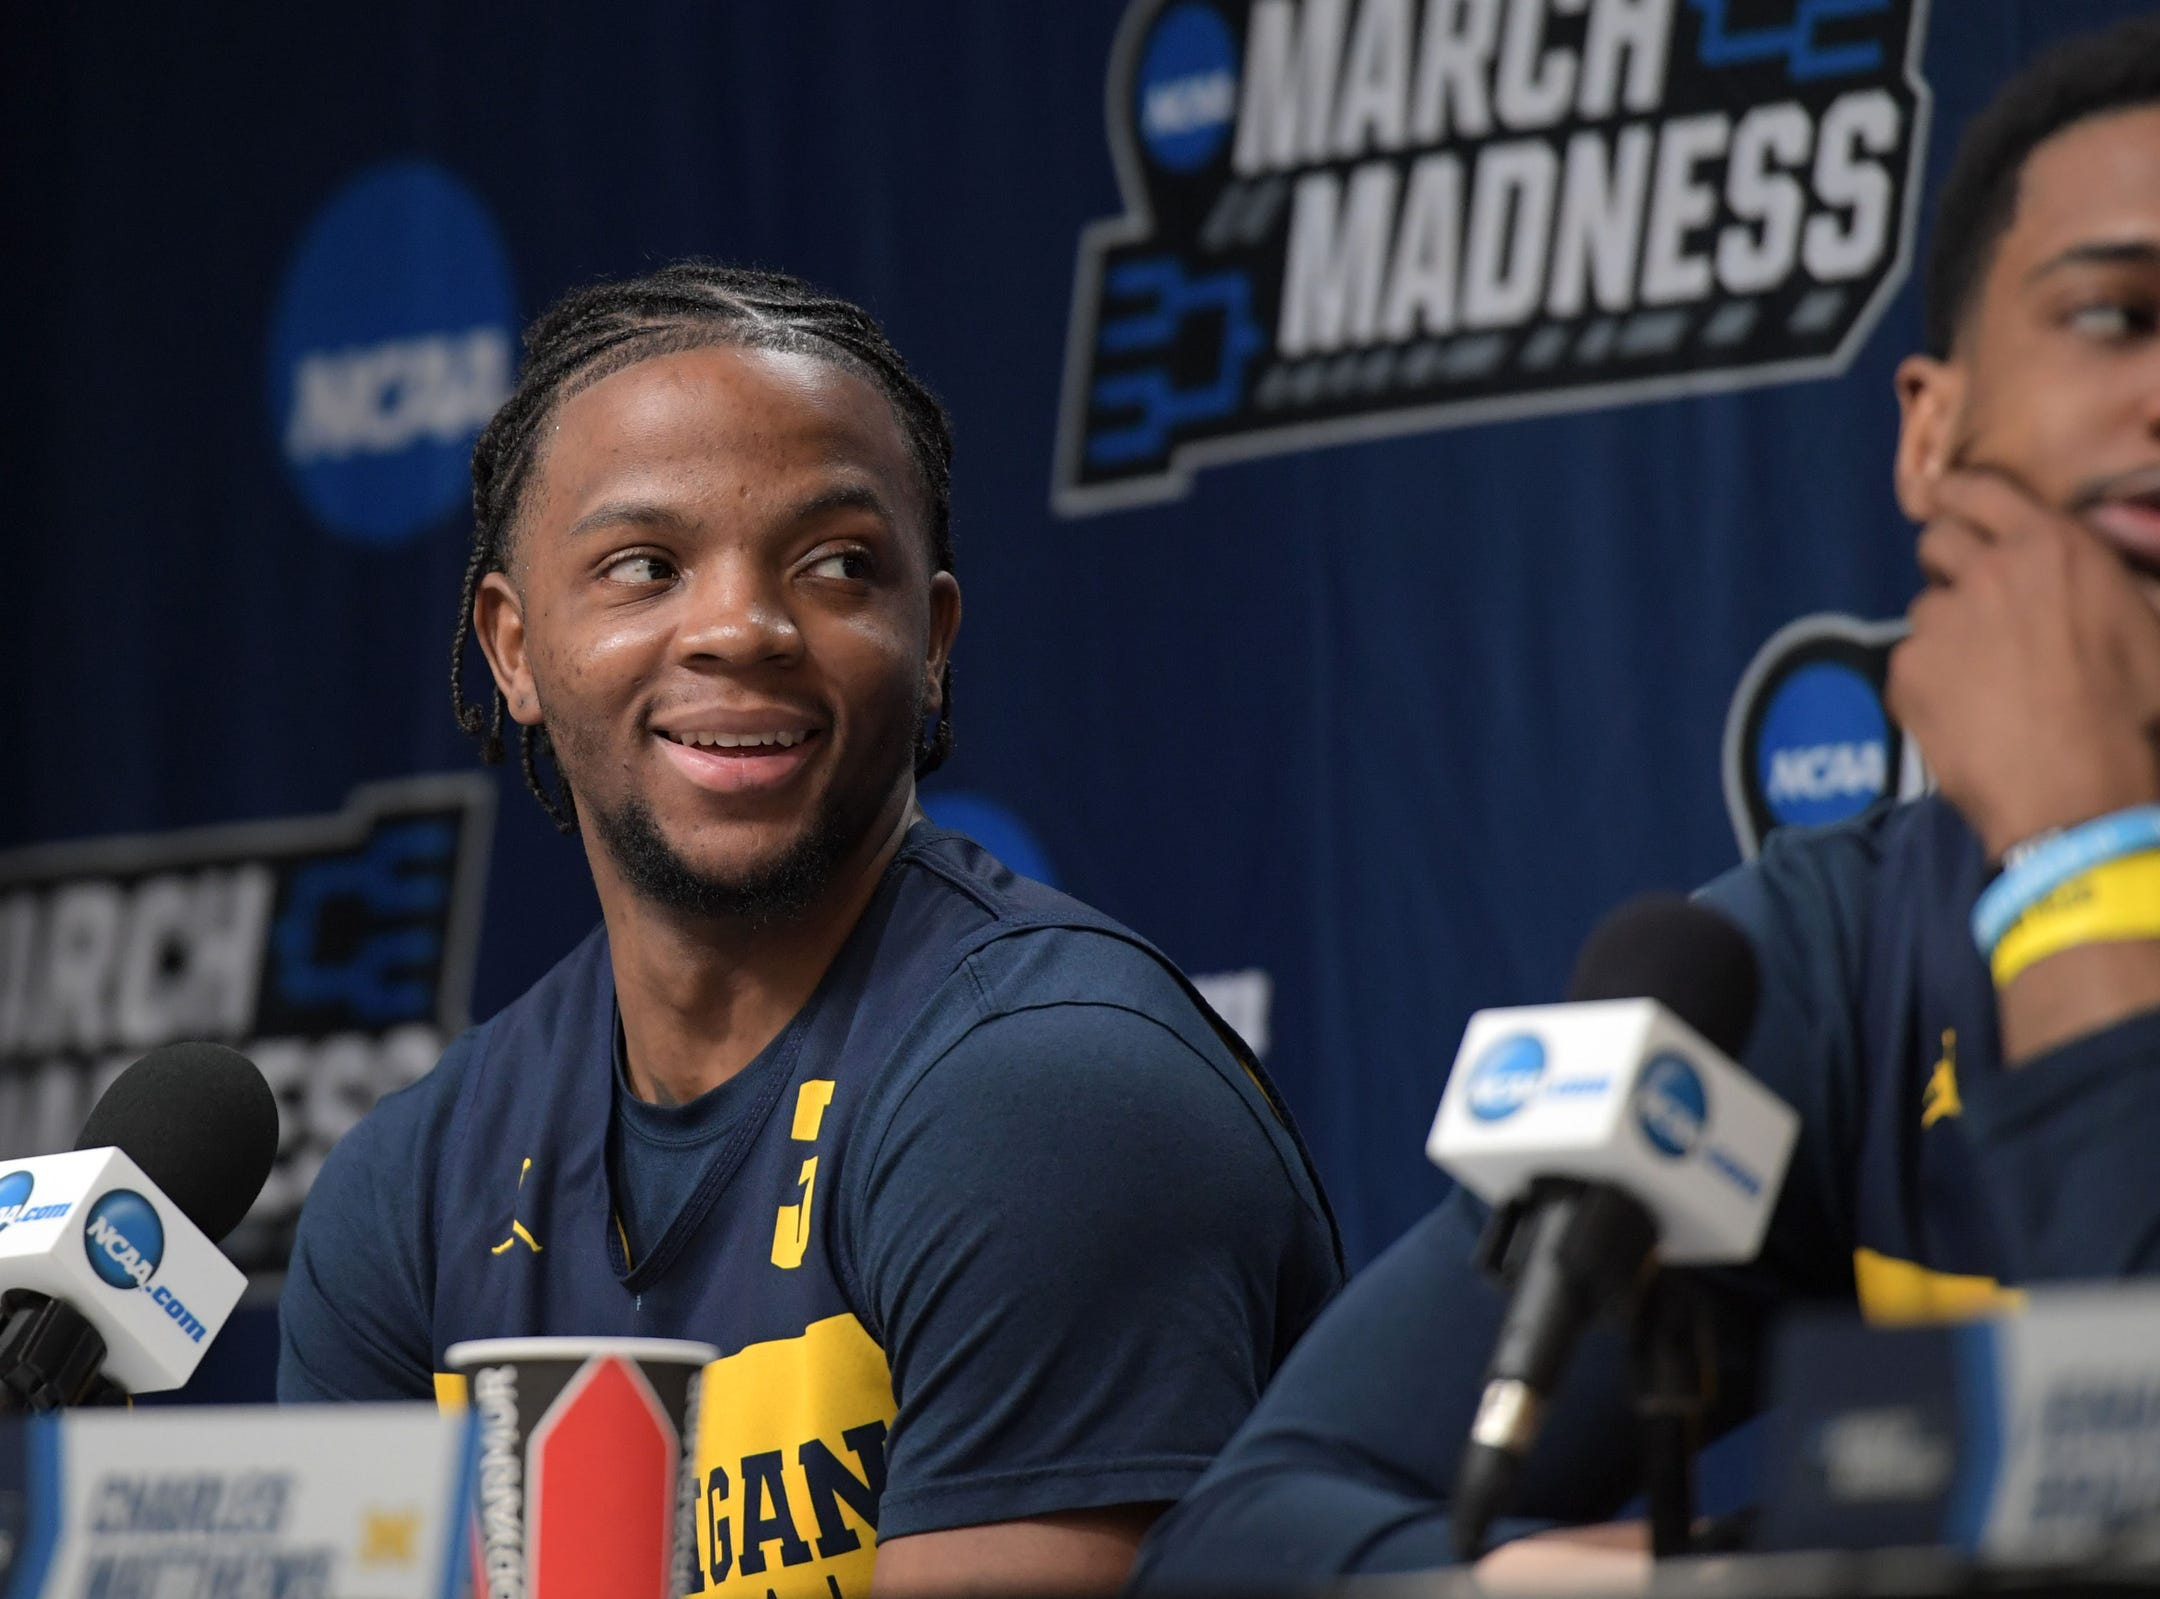 Mar 20, 2019; Des Moines, IA, USA; Michigan Wolverines guard Zavier Simpson (3)  during practice before the first round of the 2019 NCAA Tournament at Wells Fargo Arena. Mandatory Credit: Steven Branscombe-USA TODAY Sports